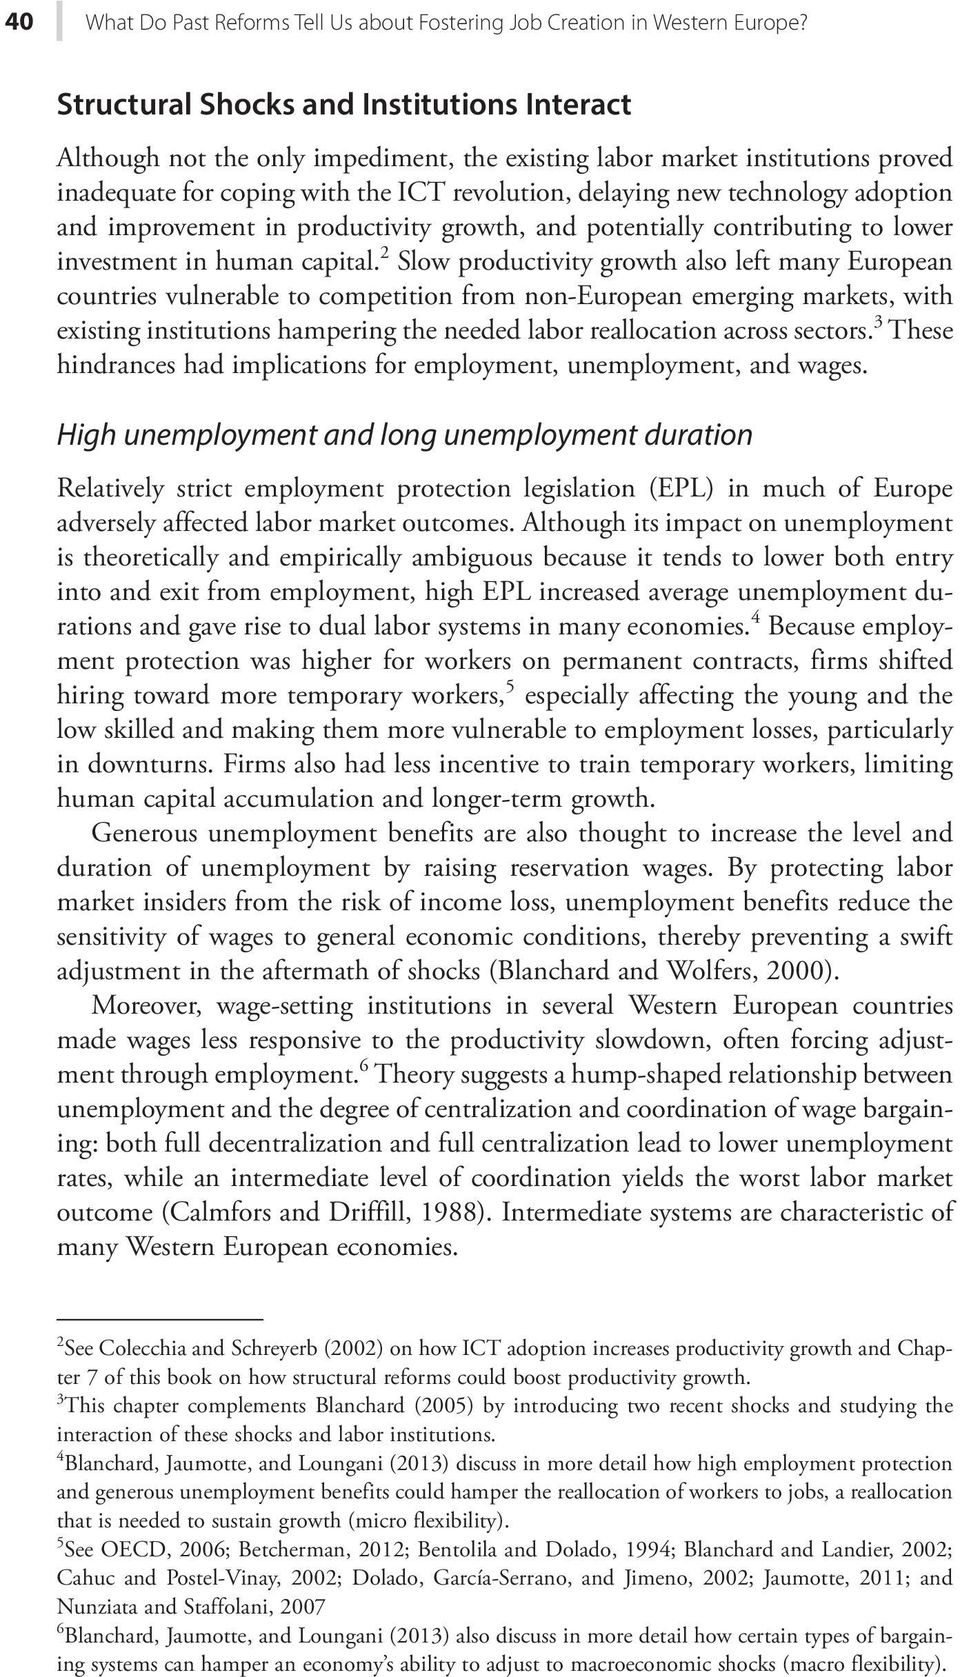 adoption and improvement in productivity growth, and potentially contributing to lower investment in human capital.